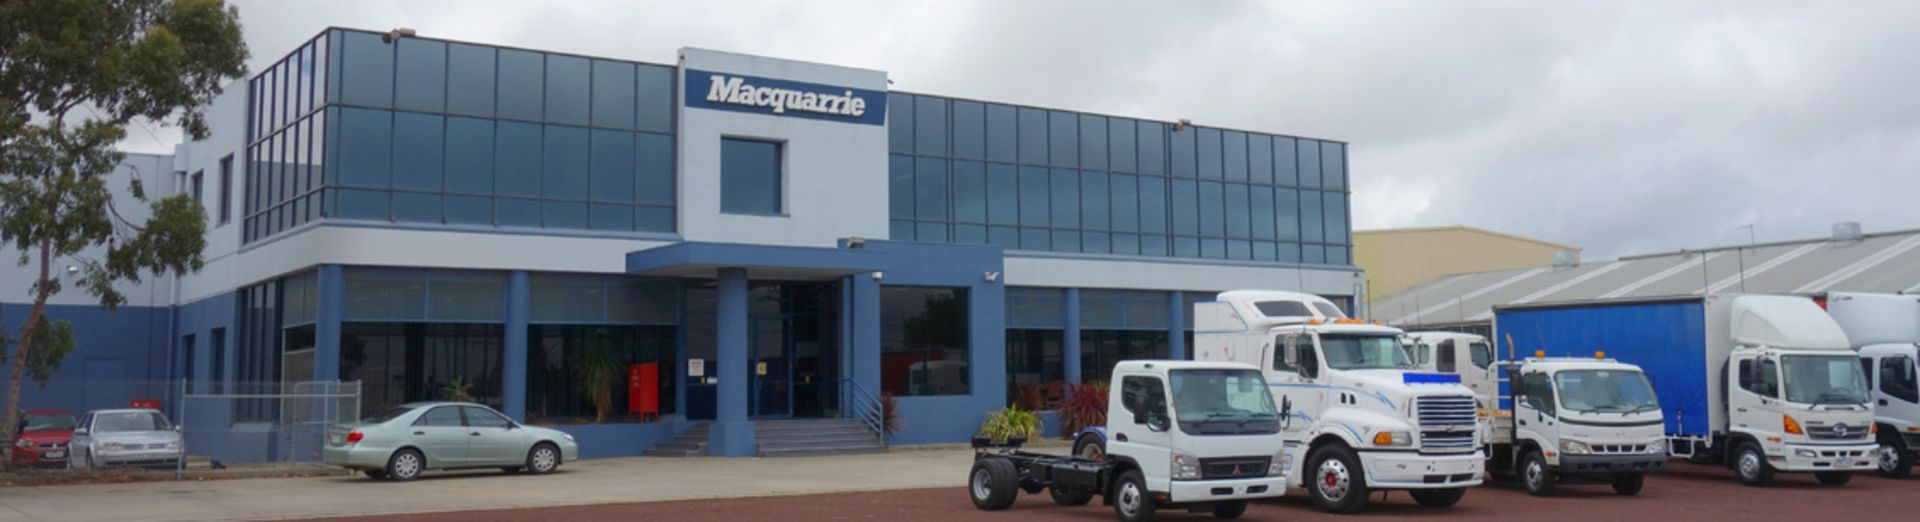 Macquarrie Corporation has been operating for over 60 years